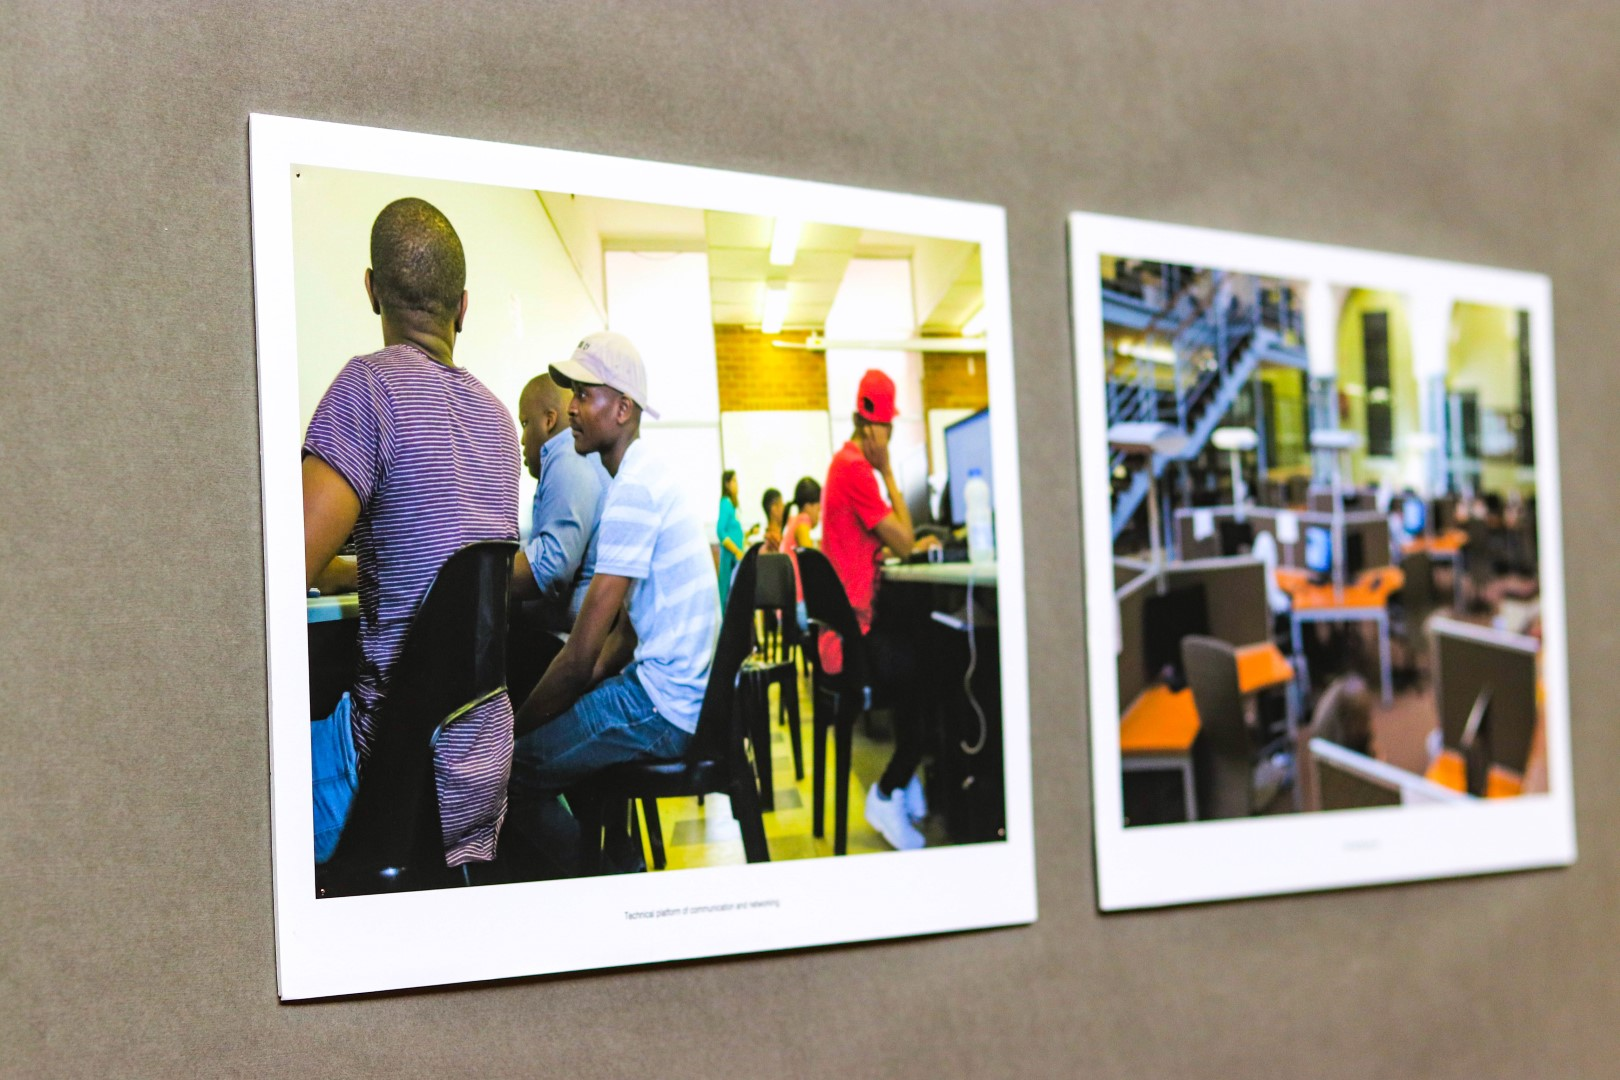 Images showcase being a student in higher education in a post-apartheid South African university